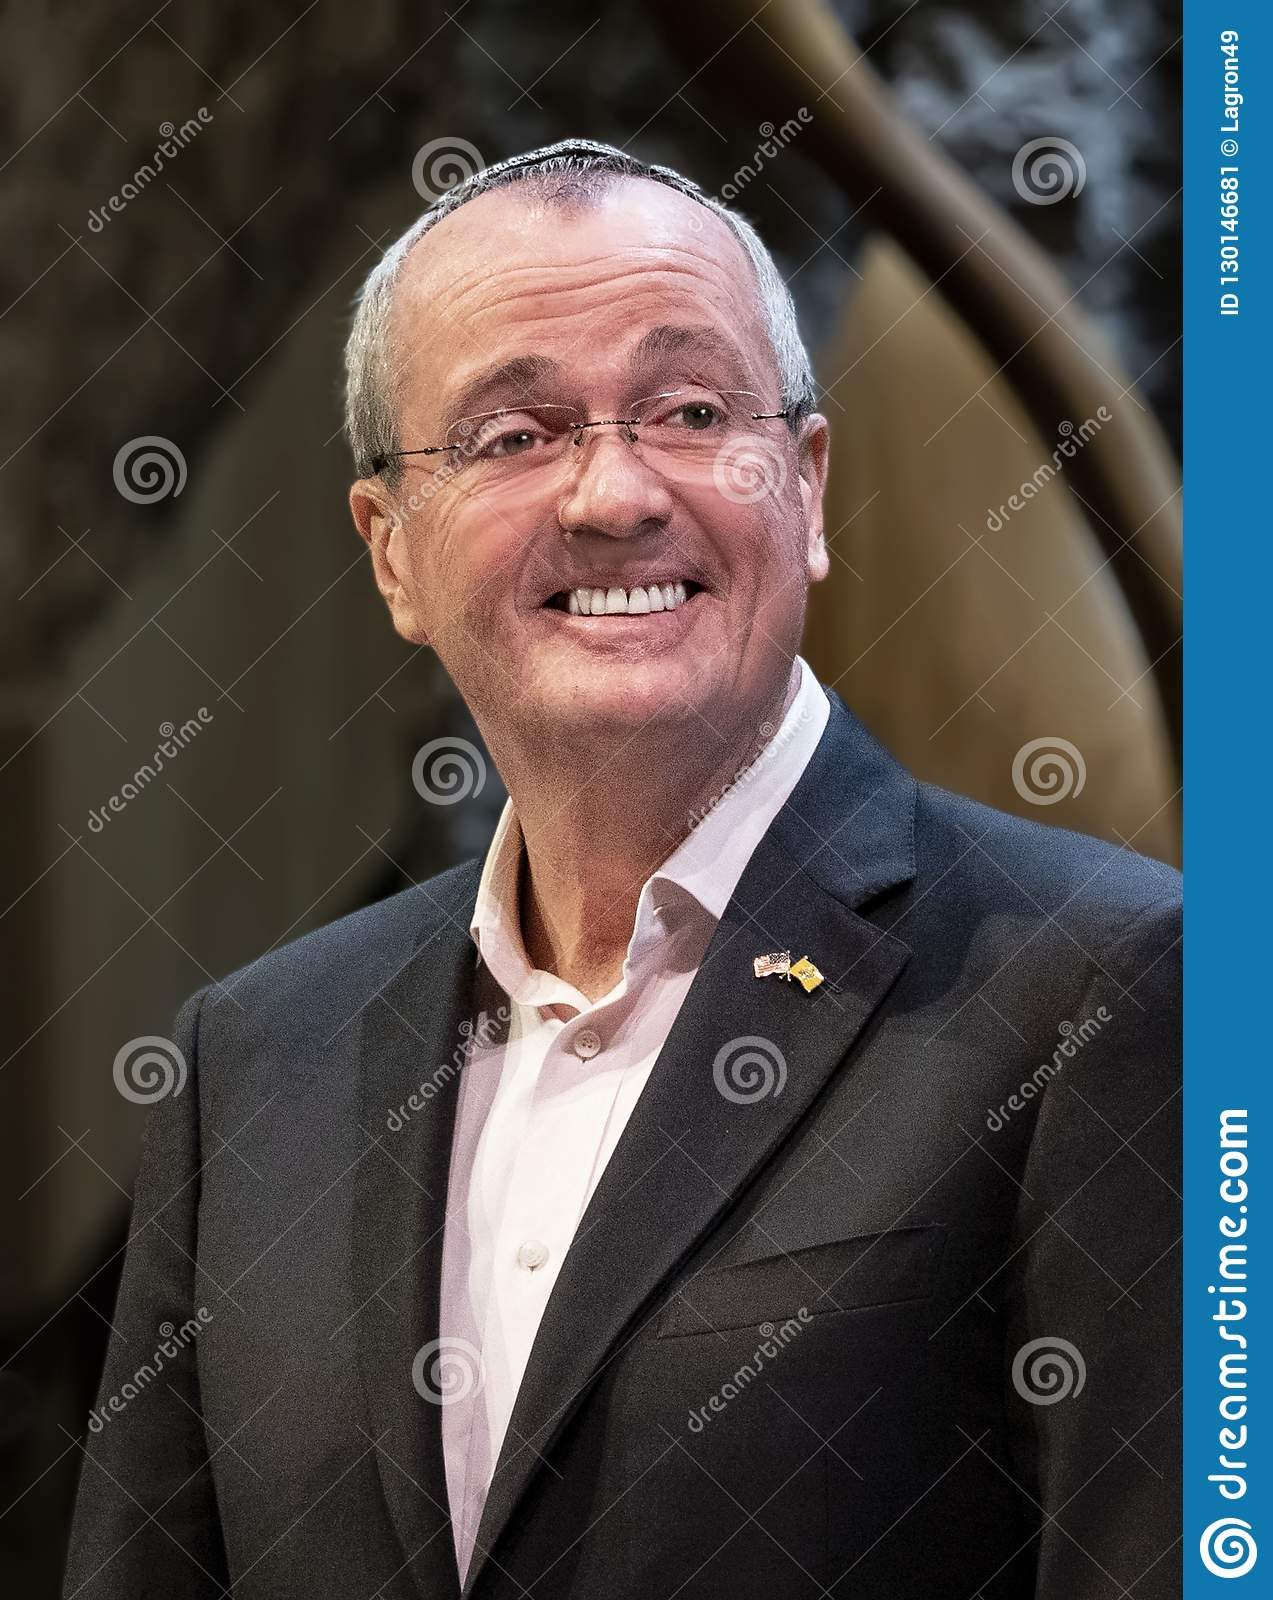 Governor Phil Murphy of New Jersey